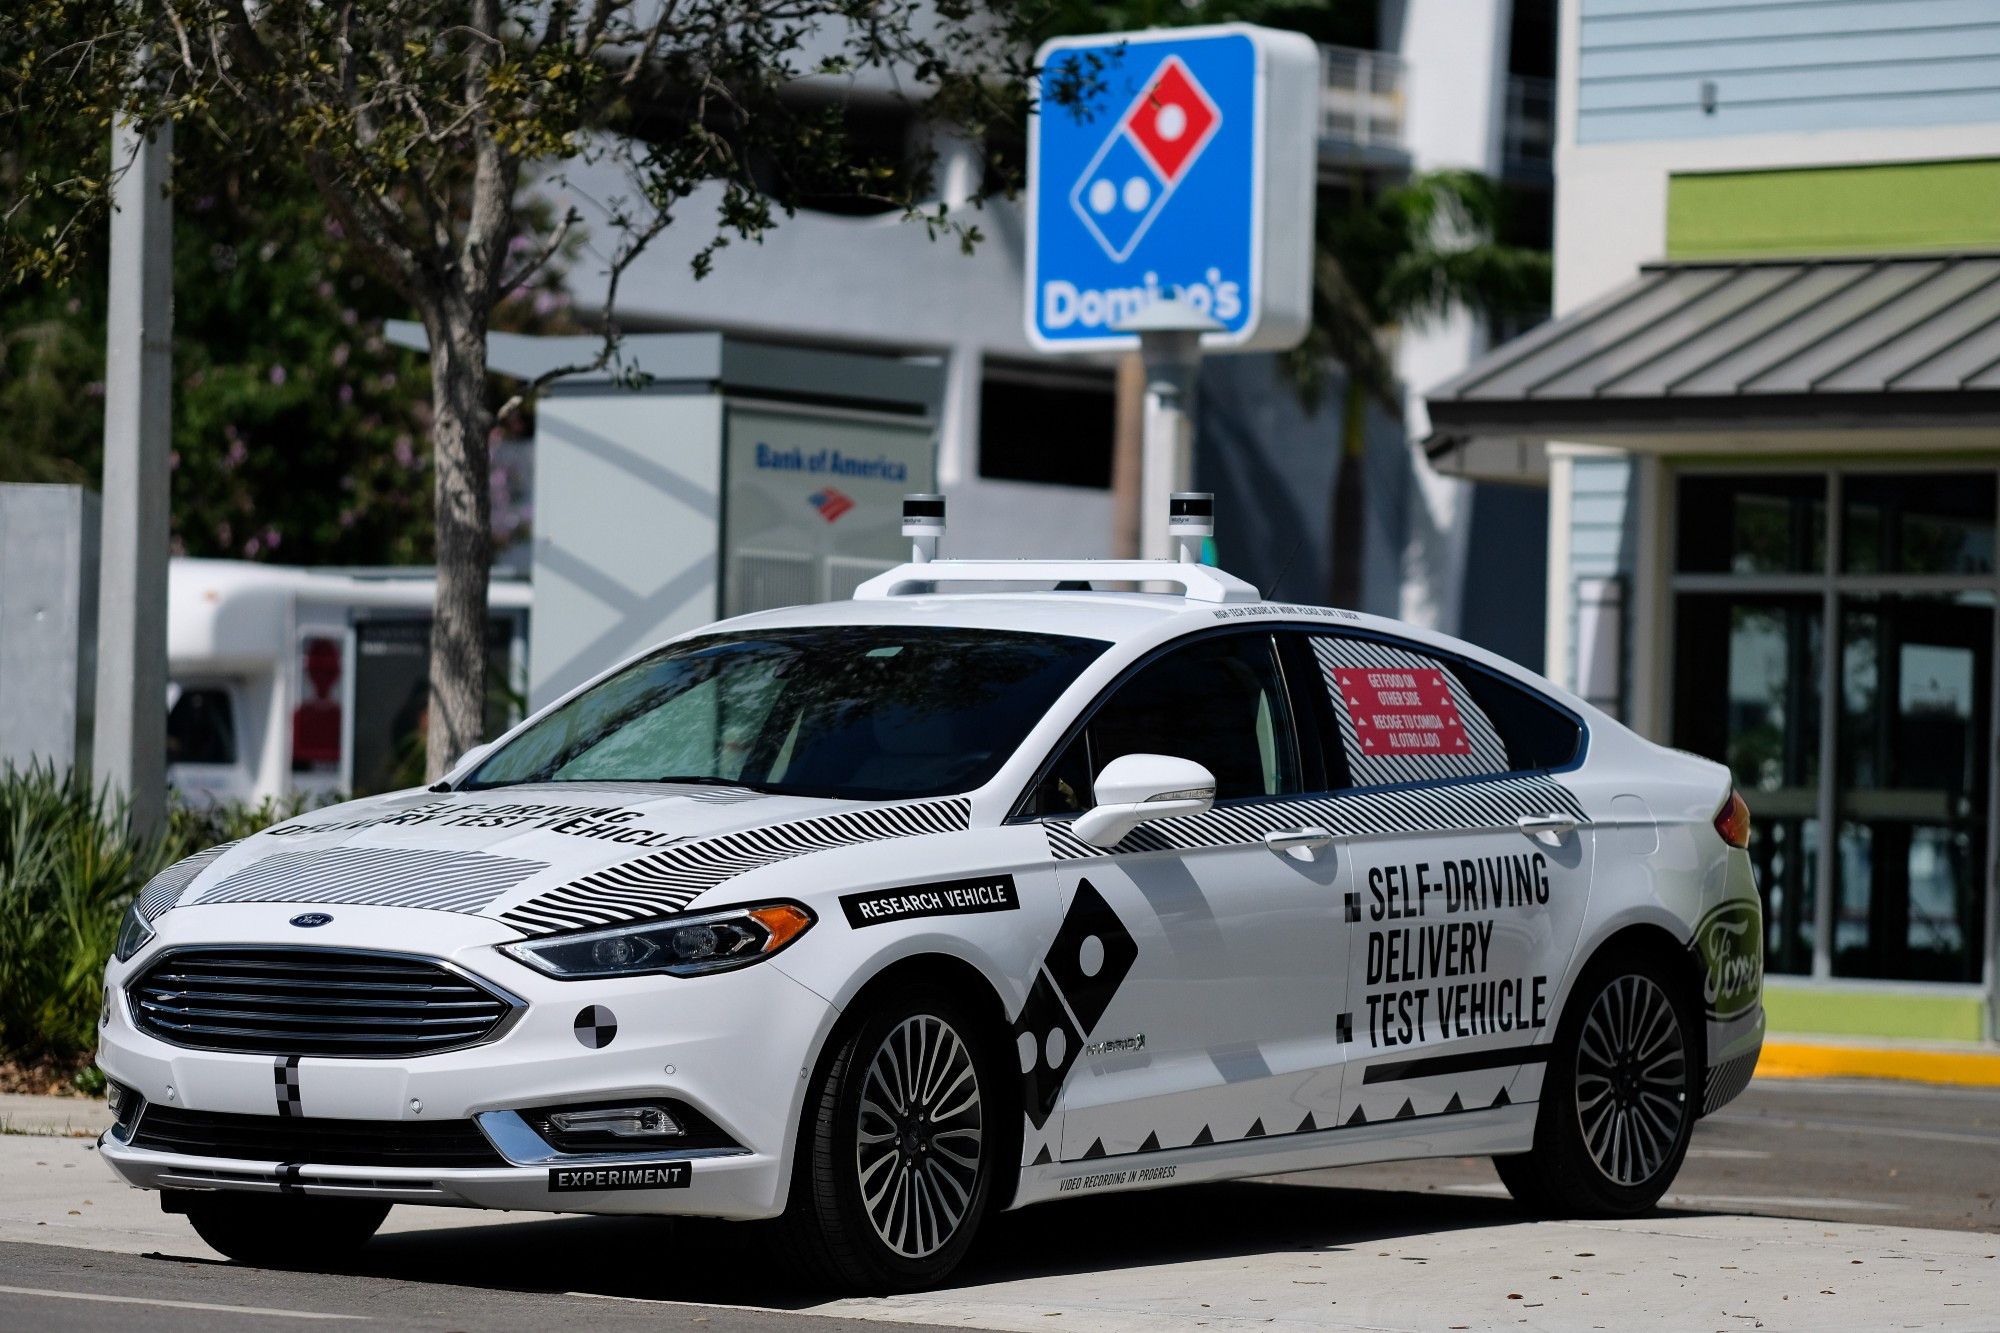 Domino's and Ford trial self-driving pizza delivery cars in Miami